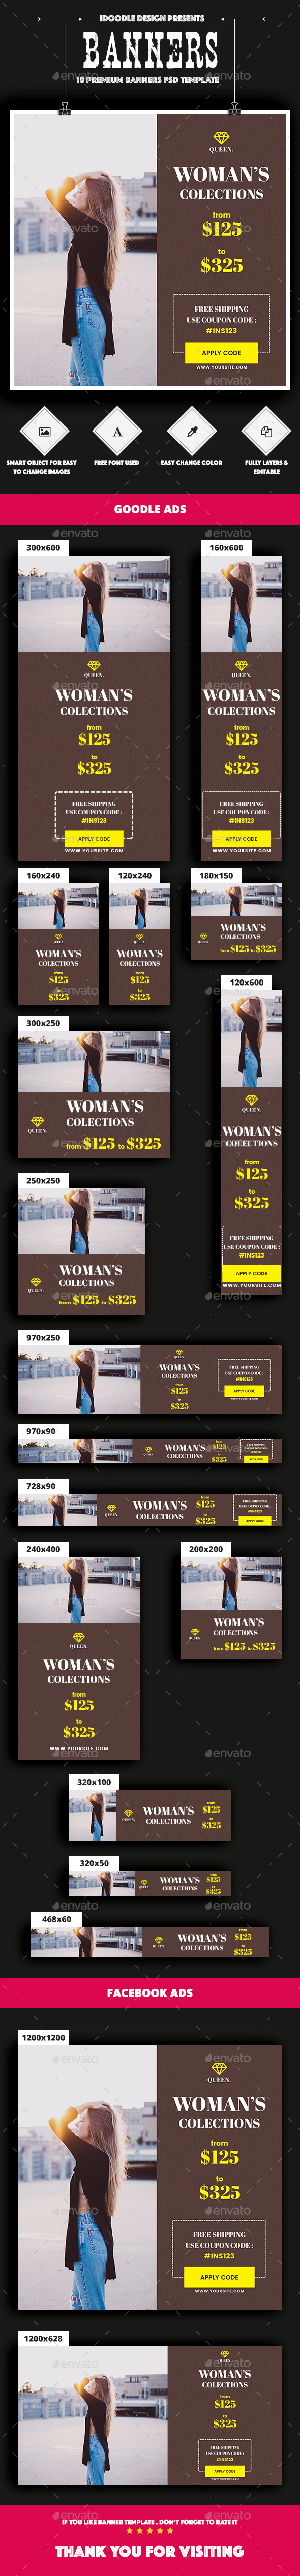 GraphicRiver Fashion Banners Ads 21022165